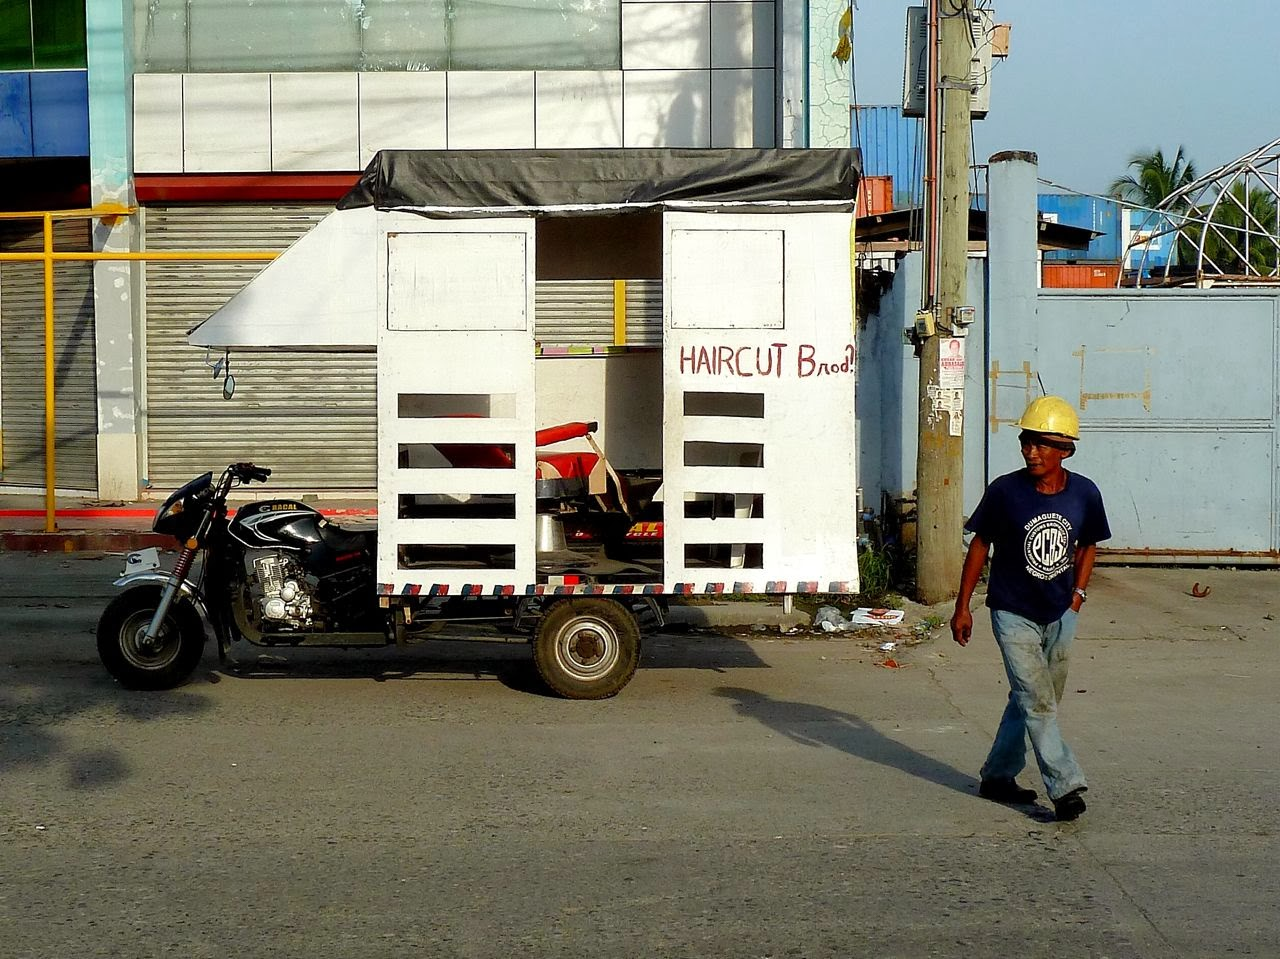 And the odd bus the philippines on two wheels part thirteen